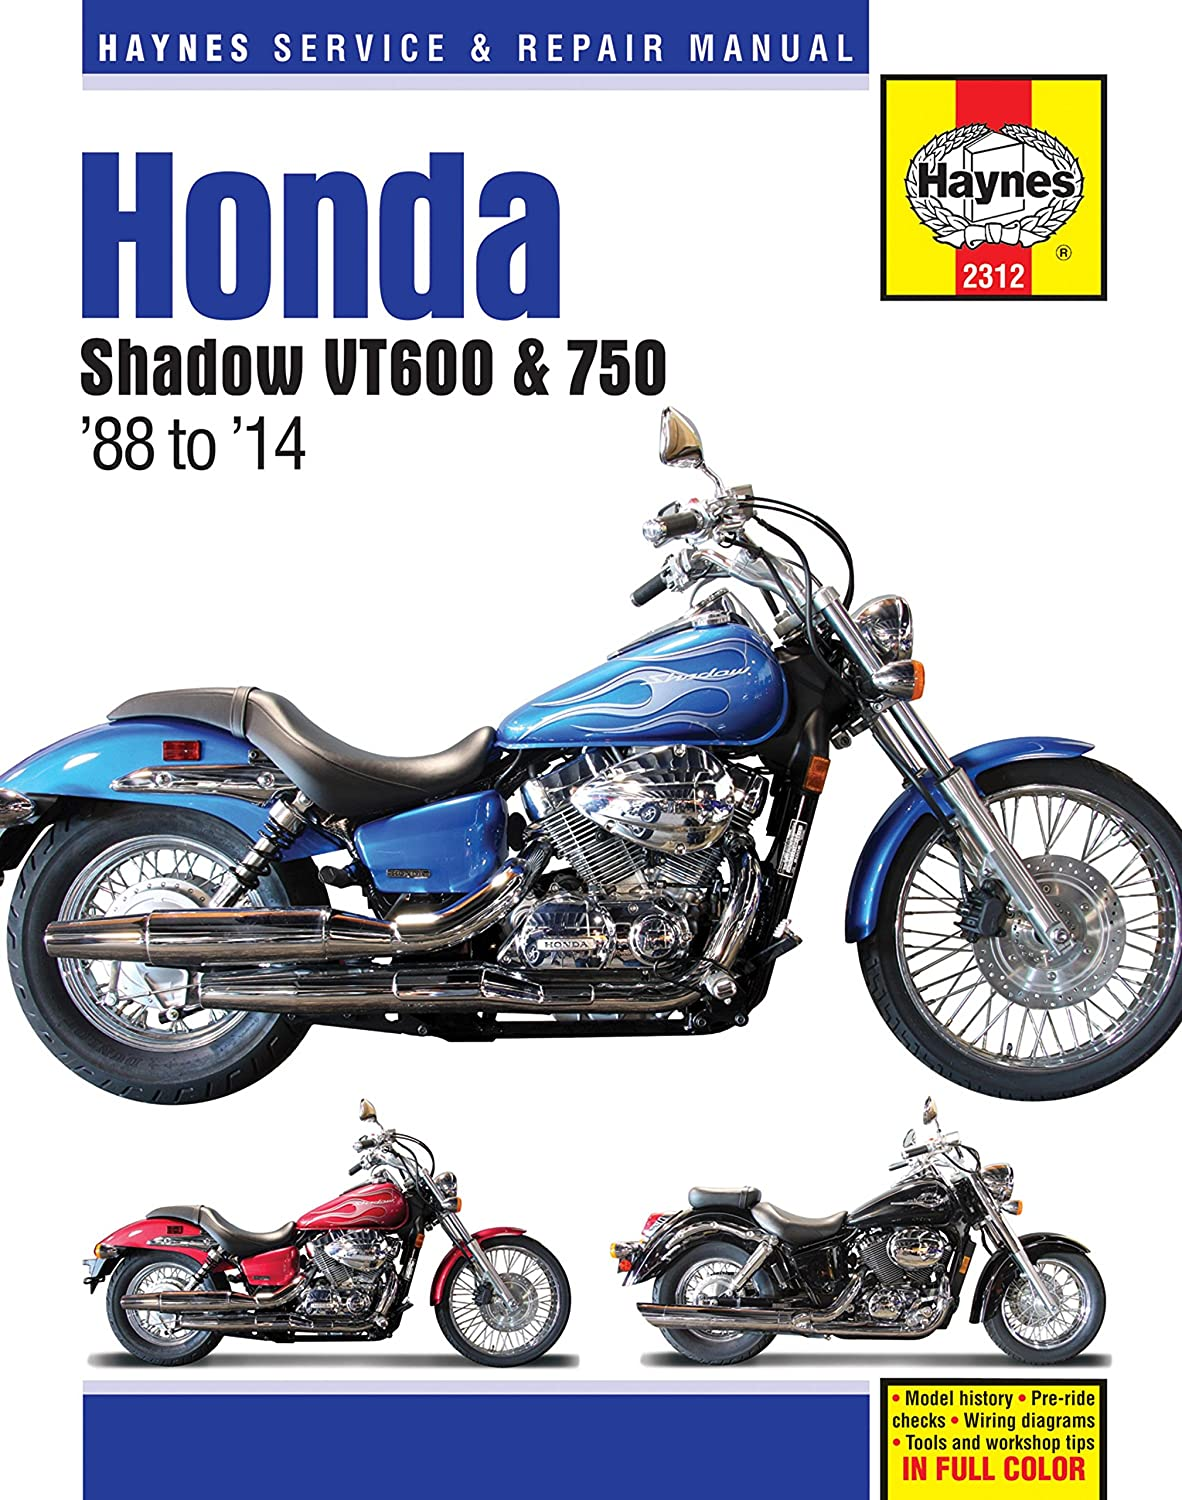 Amazon.com: Haynes M2312 Honda Shadow VT600 and VT750 Repair Manual  (1988-2014): Automotive